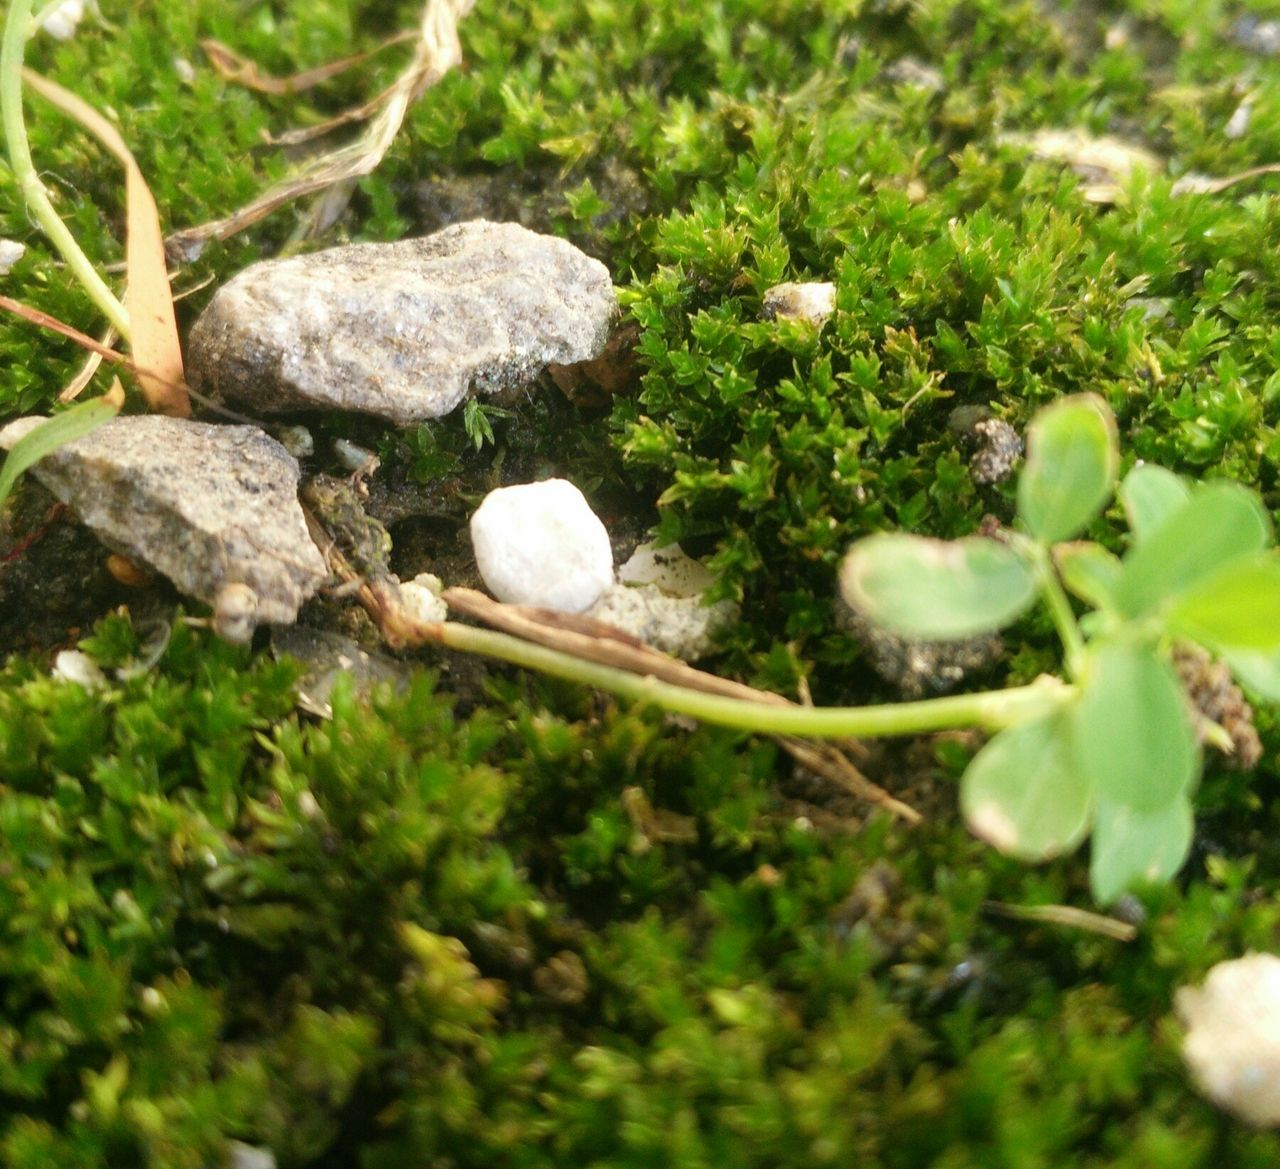 nature, plant, growth, green color, no people, beauty in nature, leaf, grass, outdoors, fragility, day, close-up, freshness